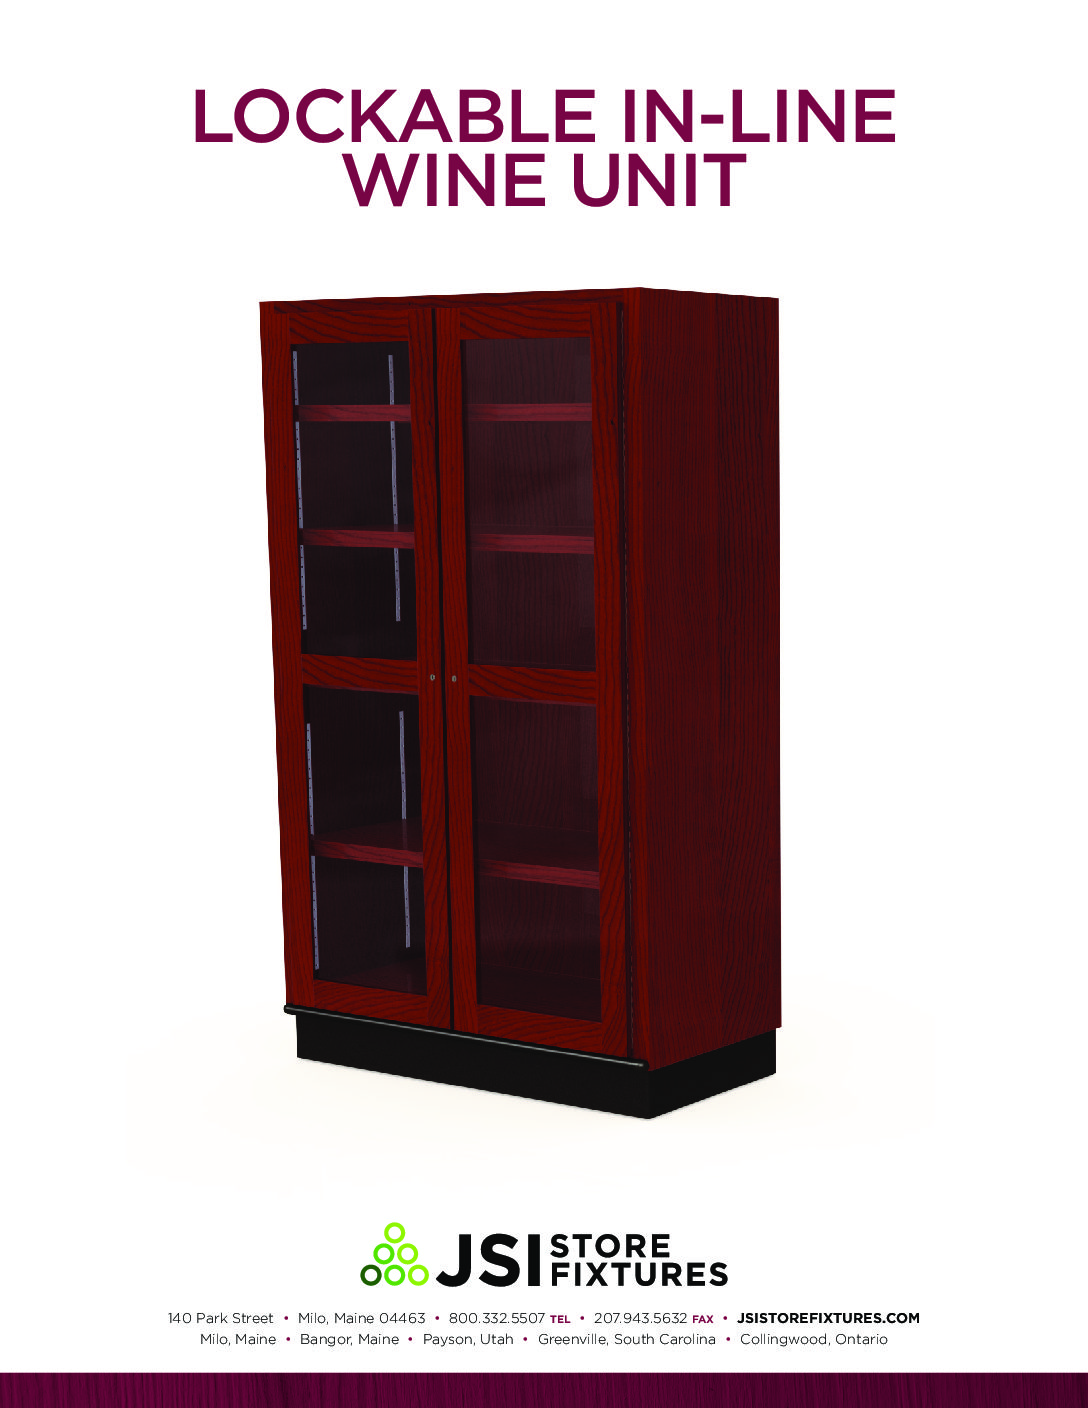 Lockable In-Line Wine Unit Spec Sheet